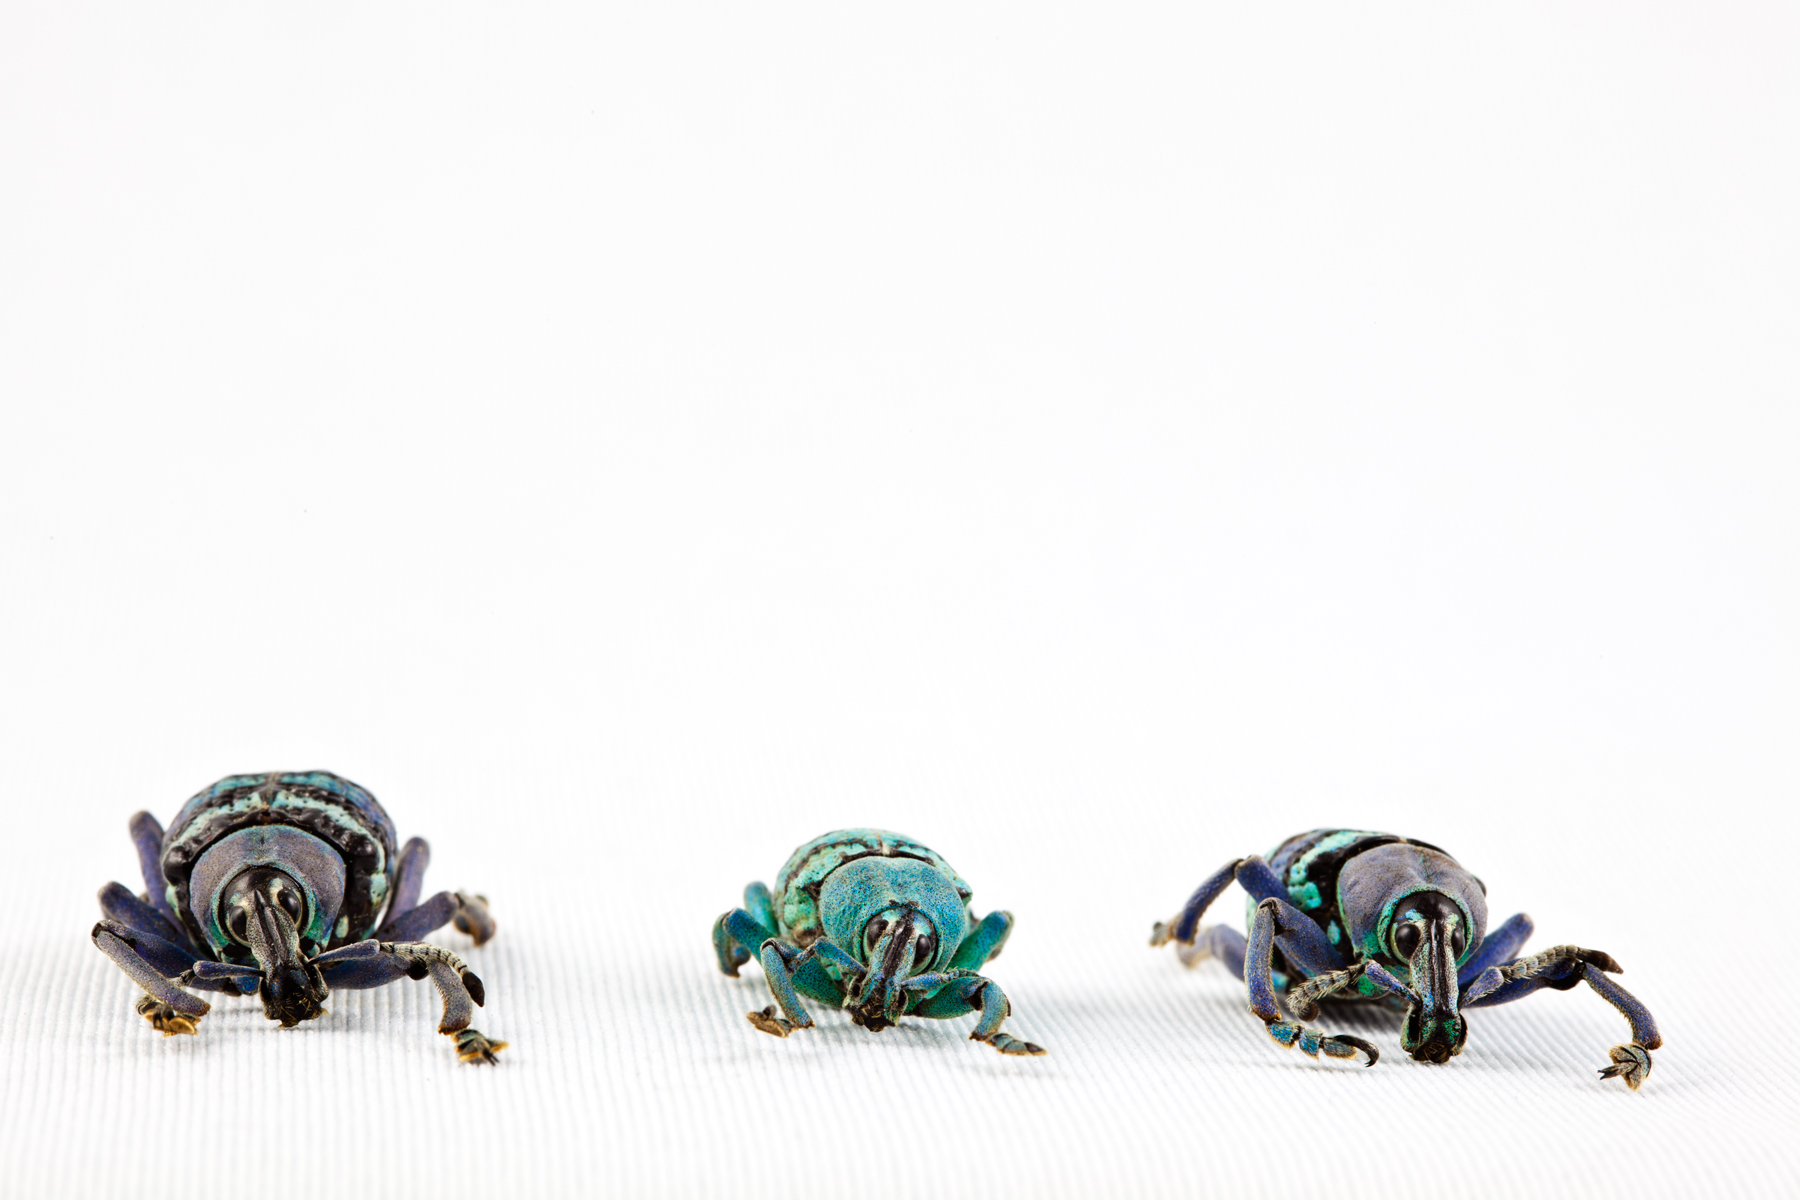 Eupholus Beetle Trio, Animal, Mix, Green, Insect, HQ Photo